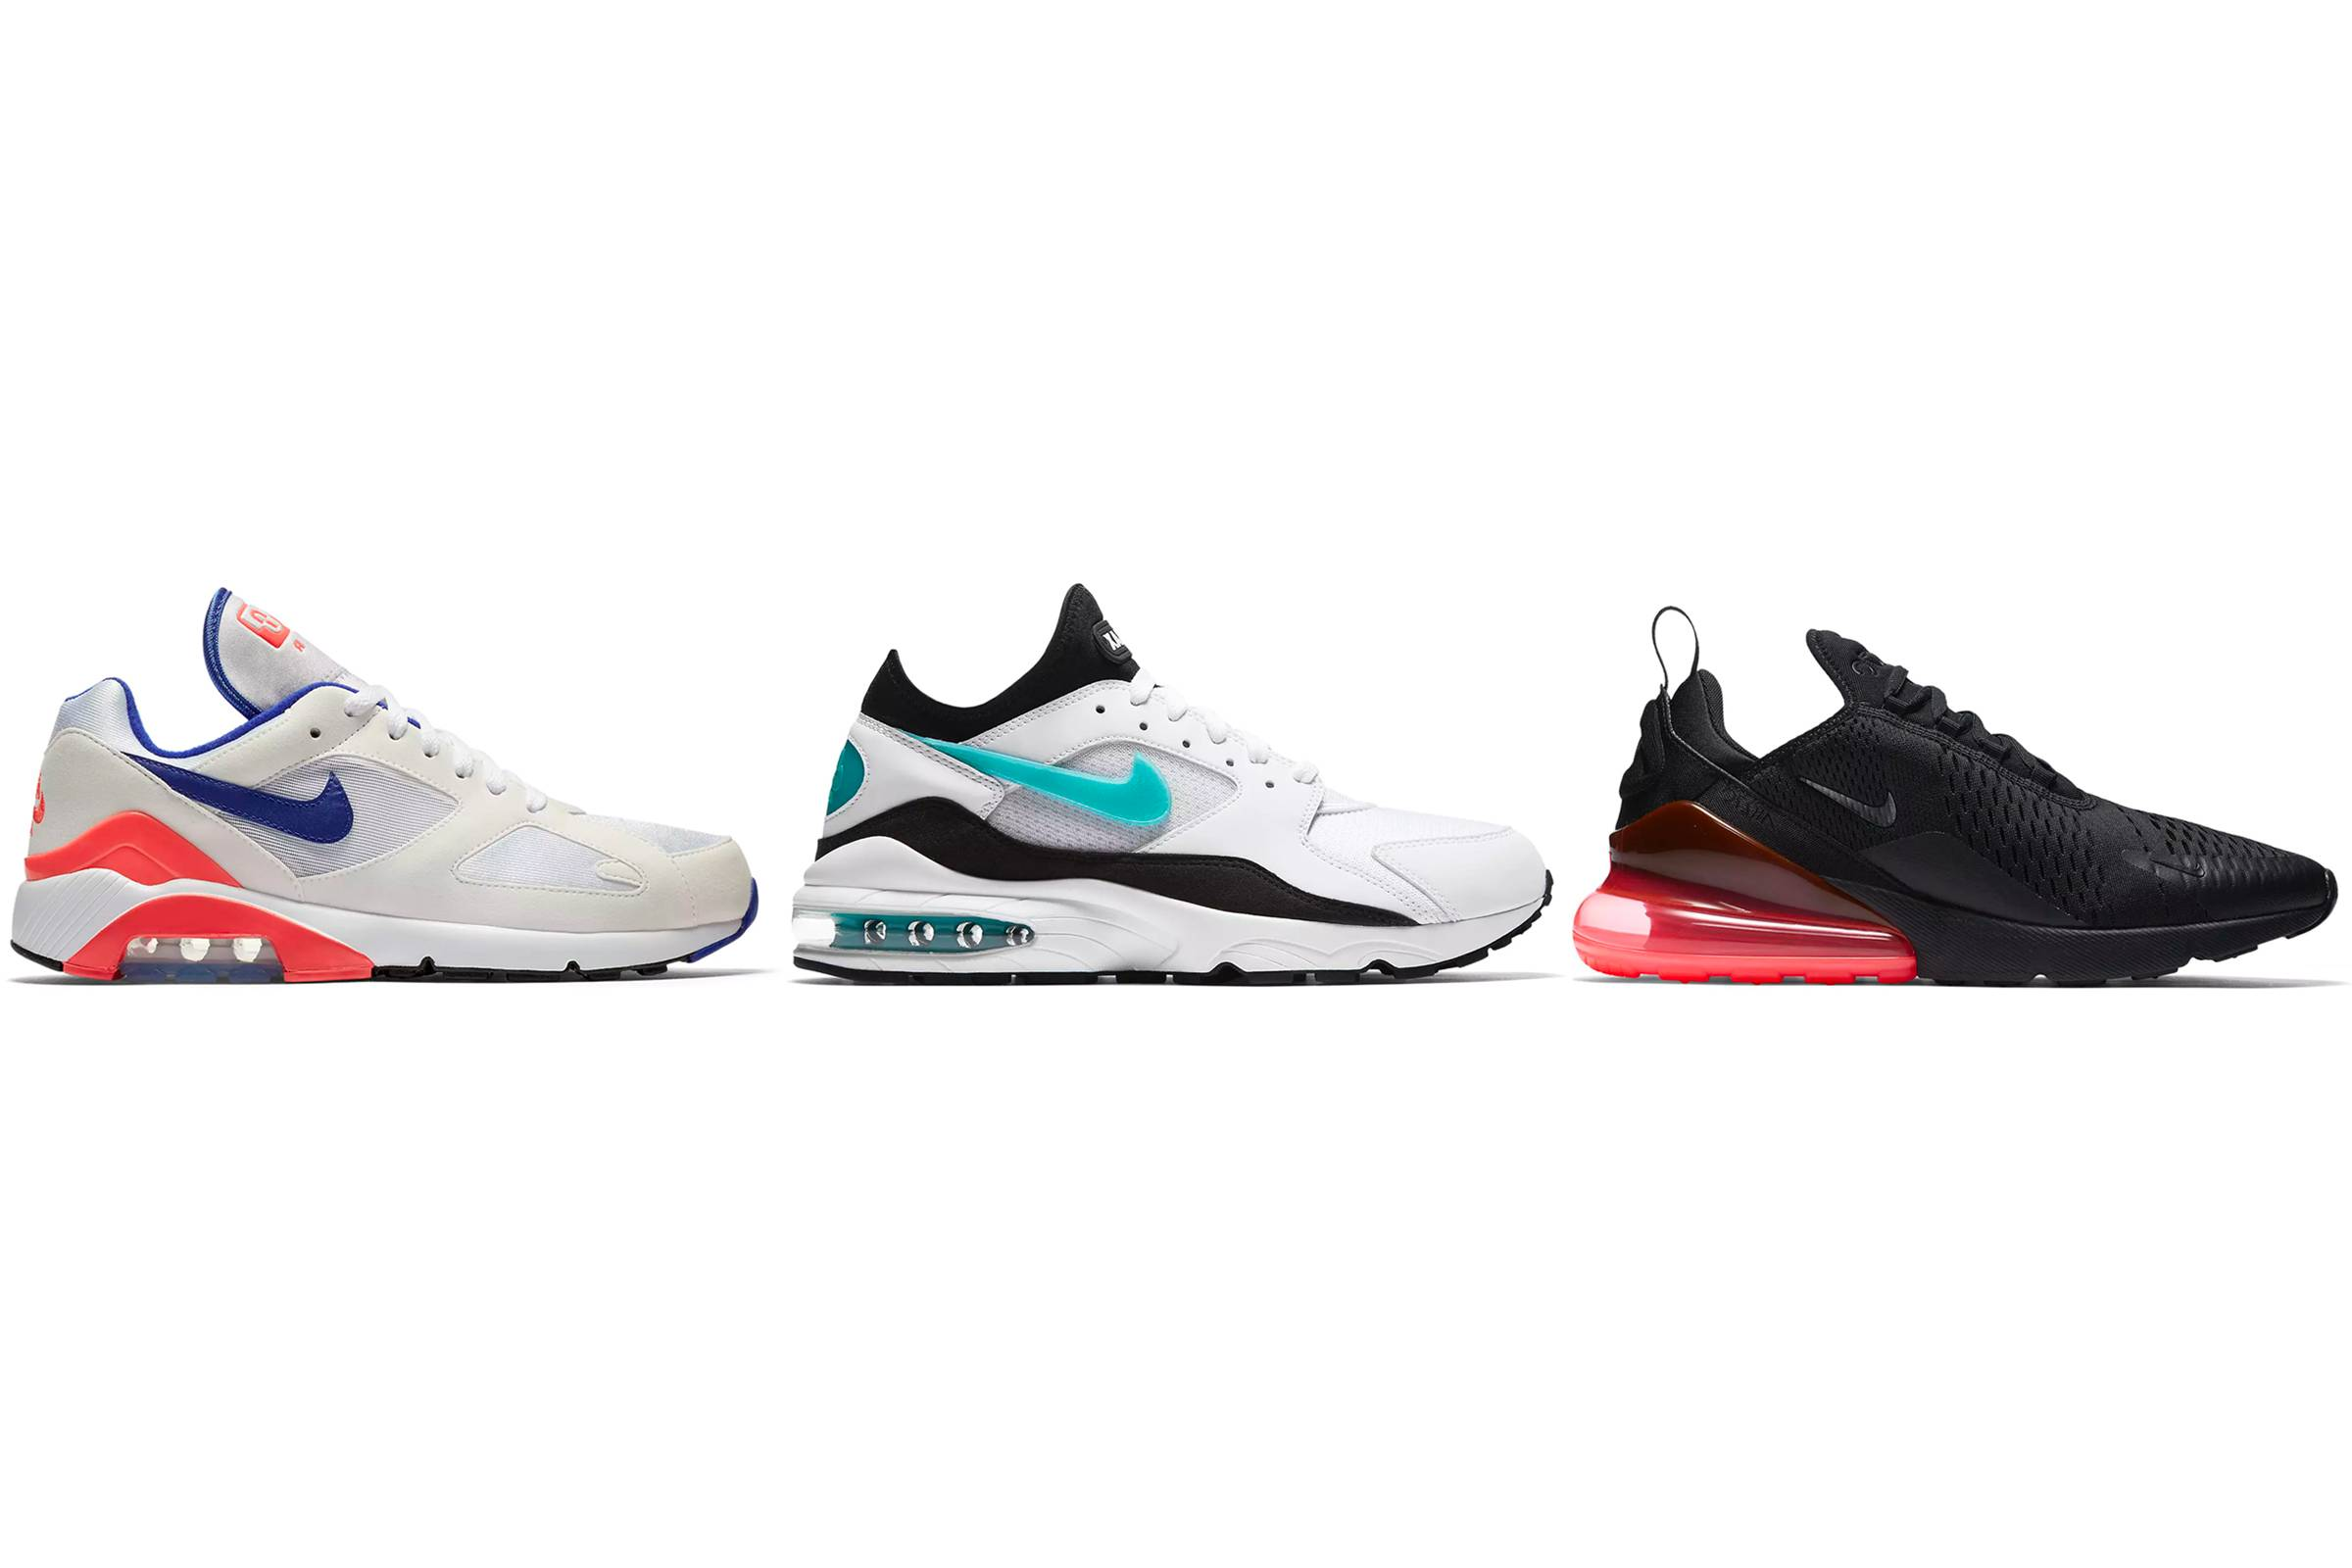 429eb53eaa62 Degrees of Air  The Evolution of the Air Max Heel Unit - Air Max 180 ...